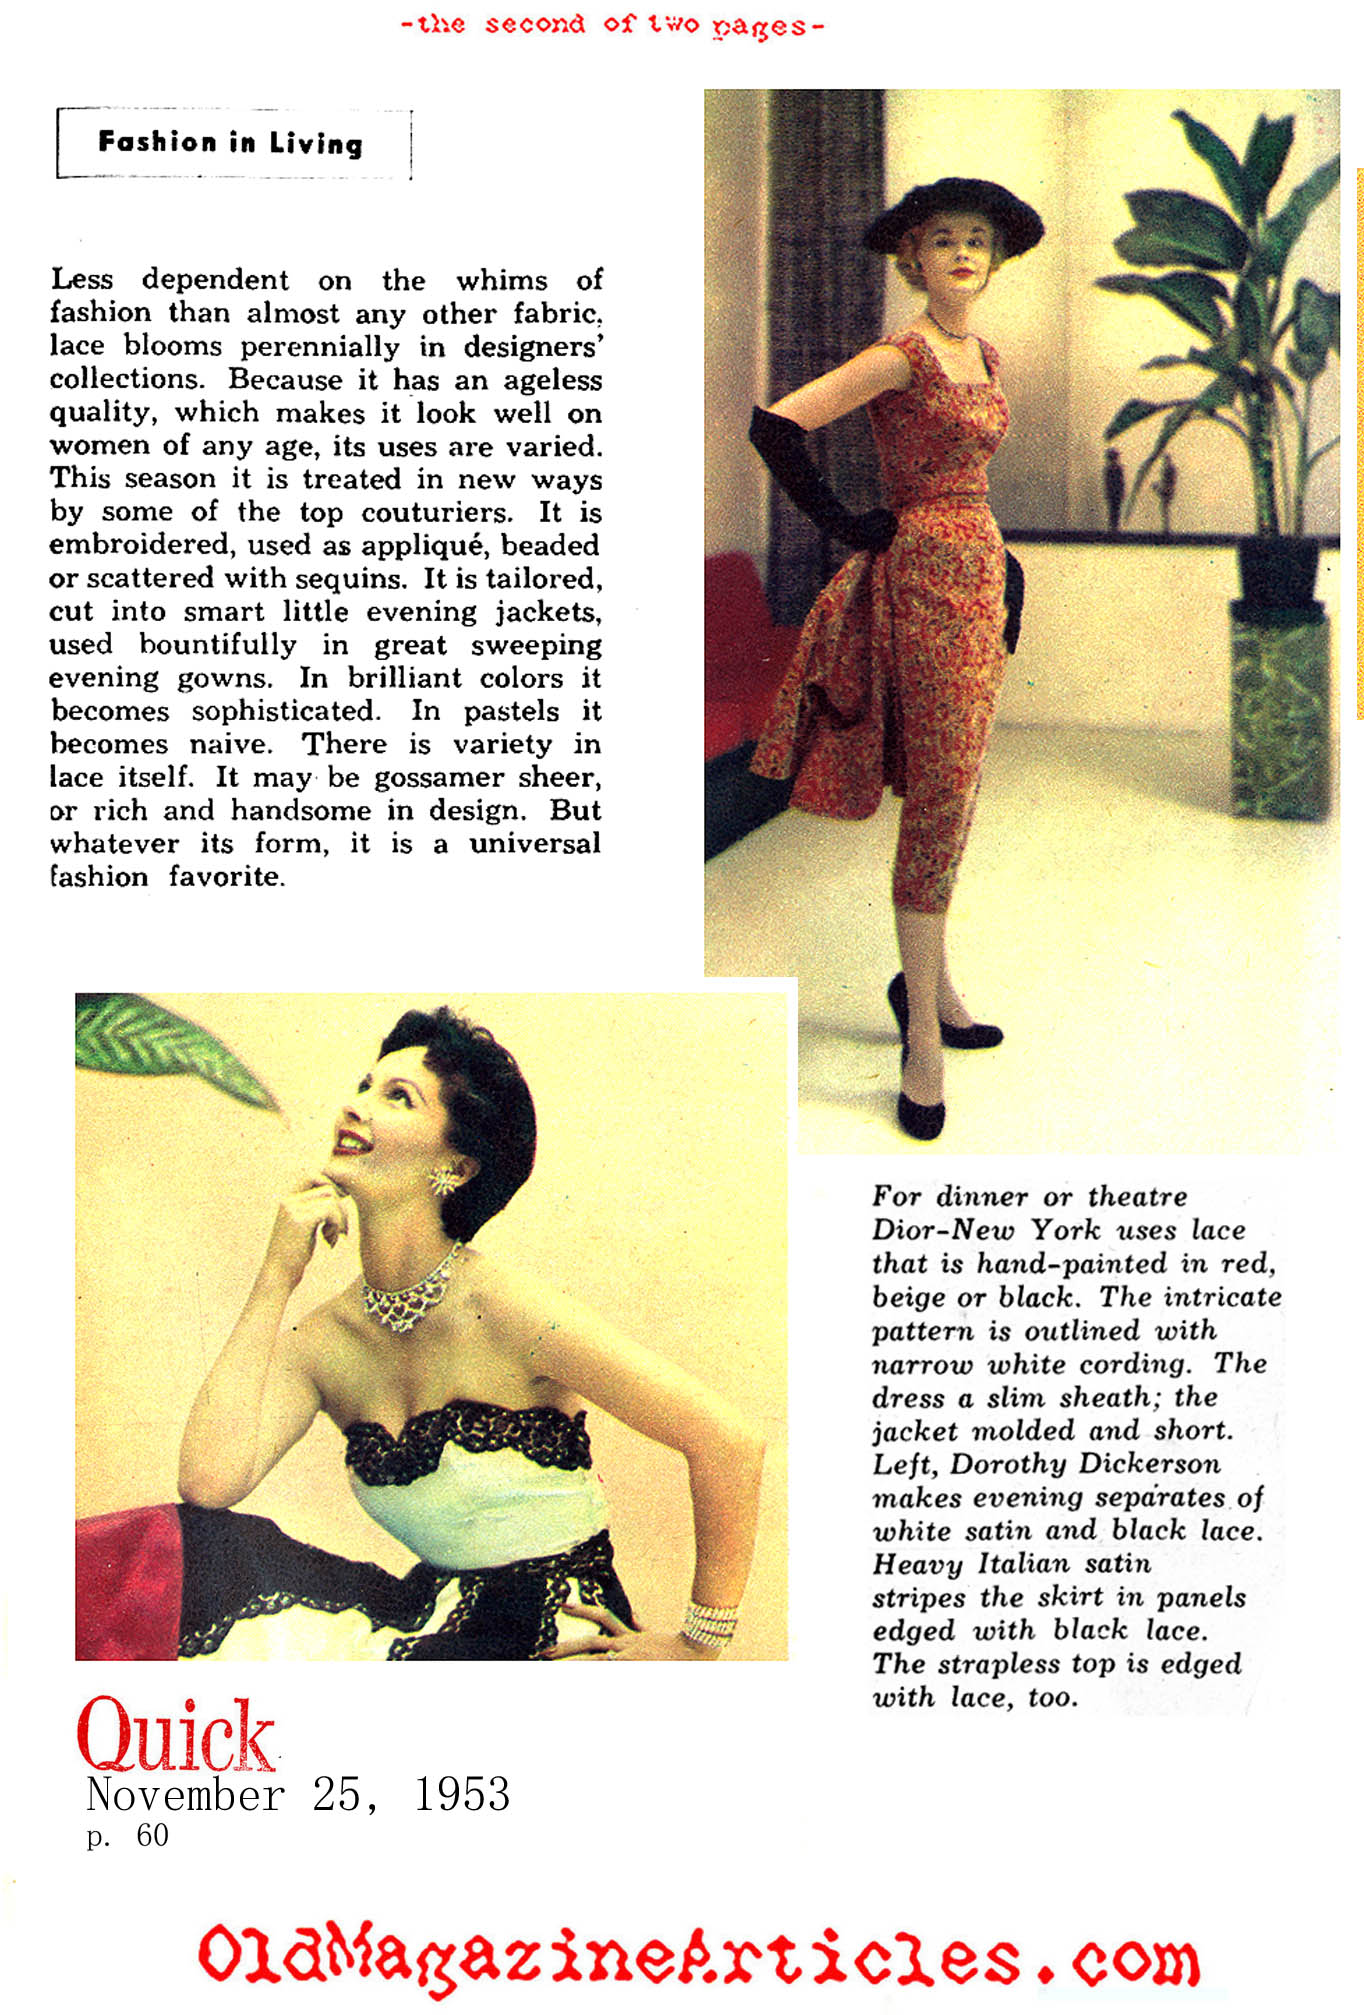 1950S LACE,LACE FASHION ARTICLE,POPULARITY OF 1950S LACE